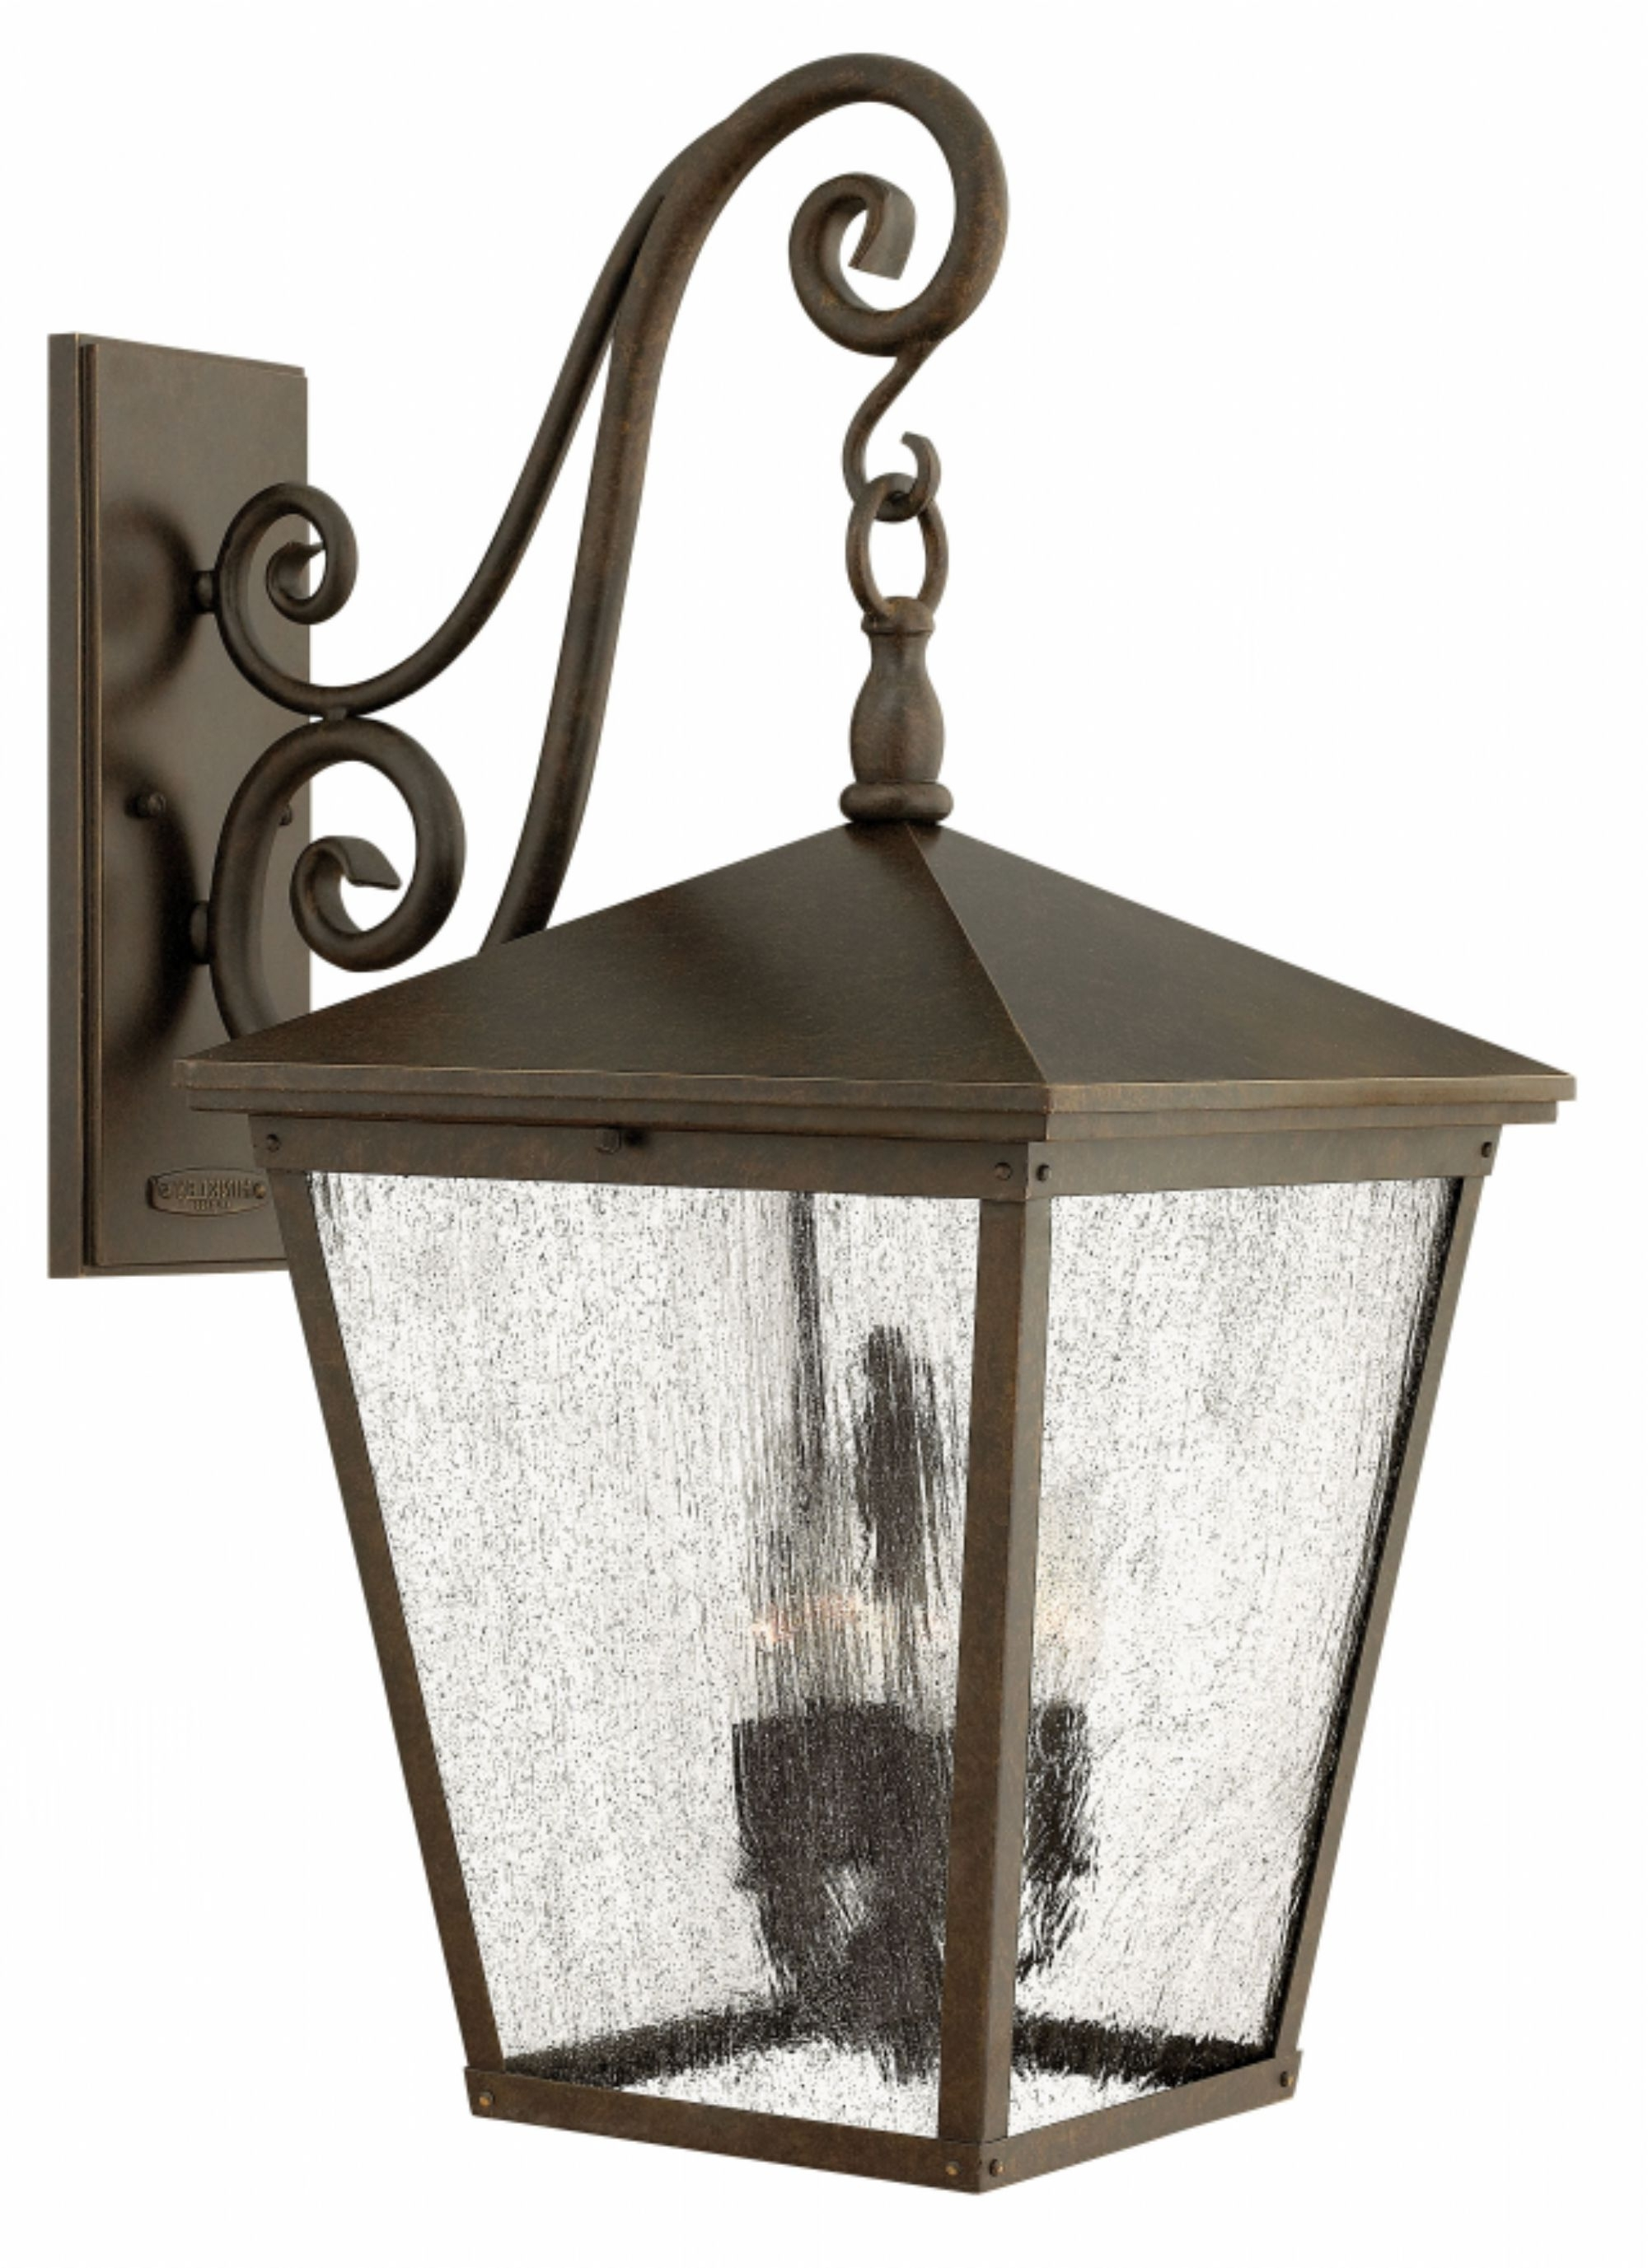 Regency Bronze Trellis > Exterior Wall Mount Throughout 2018 Extra Large Wall Mount Porch Hinkley Lighting (View 10 of 20)